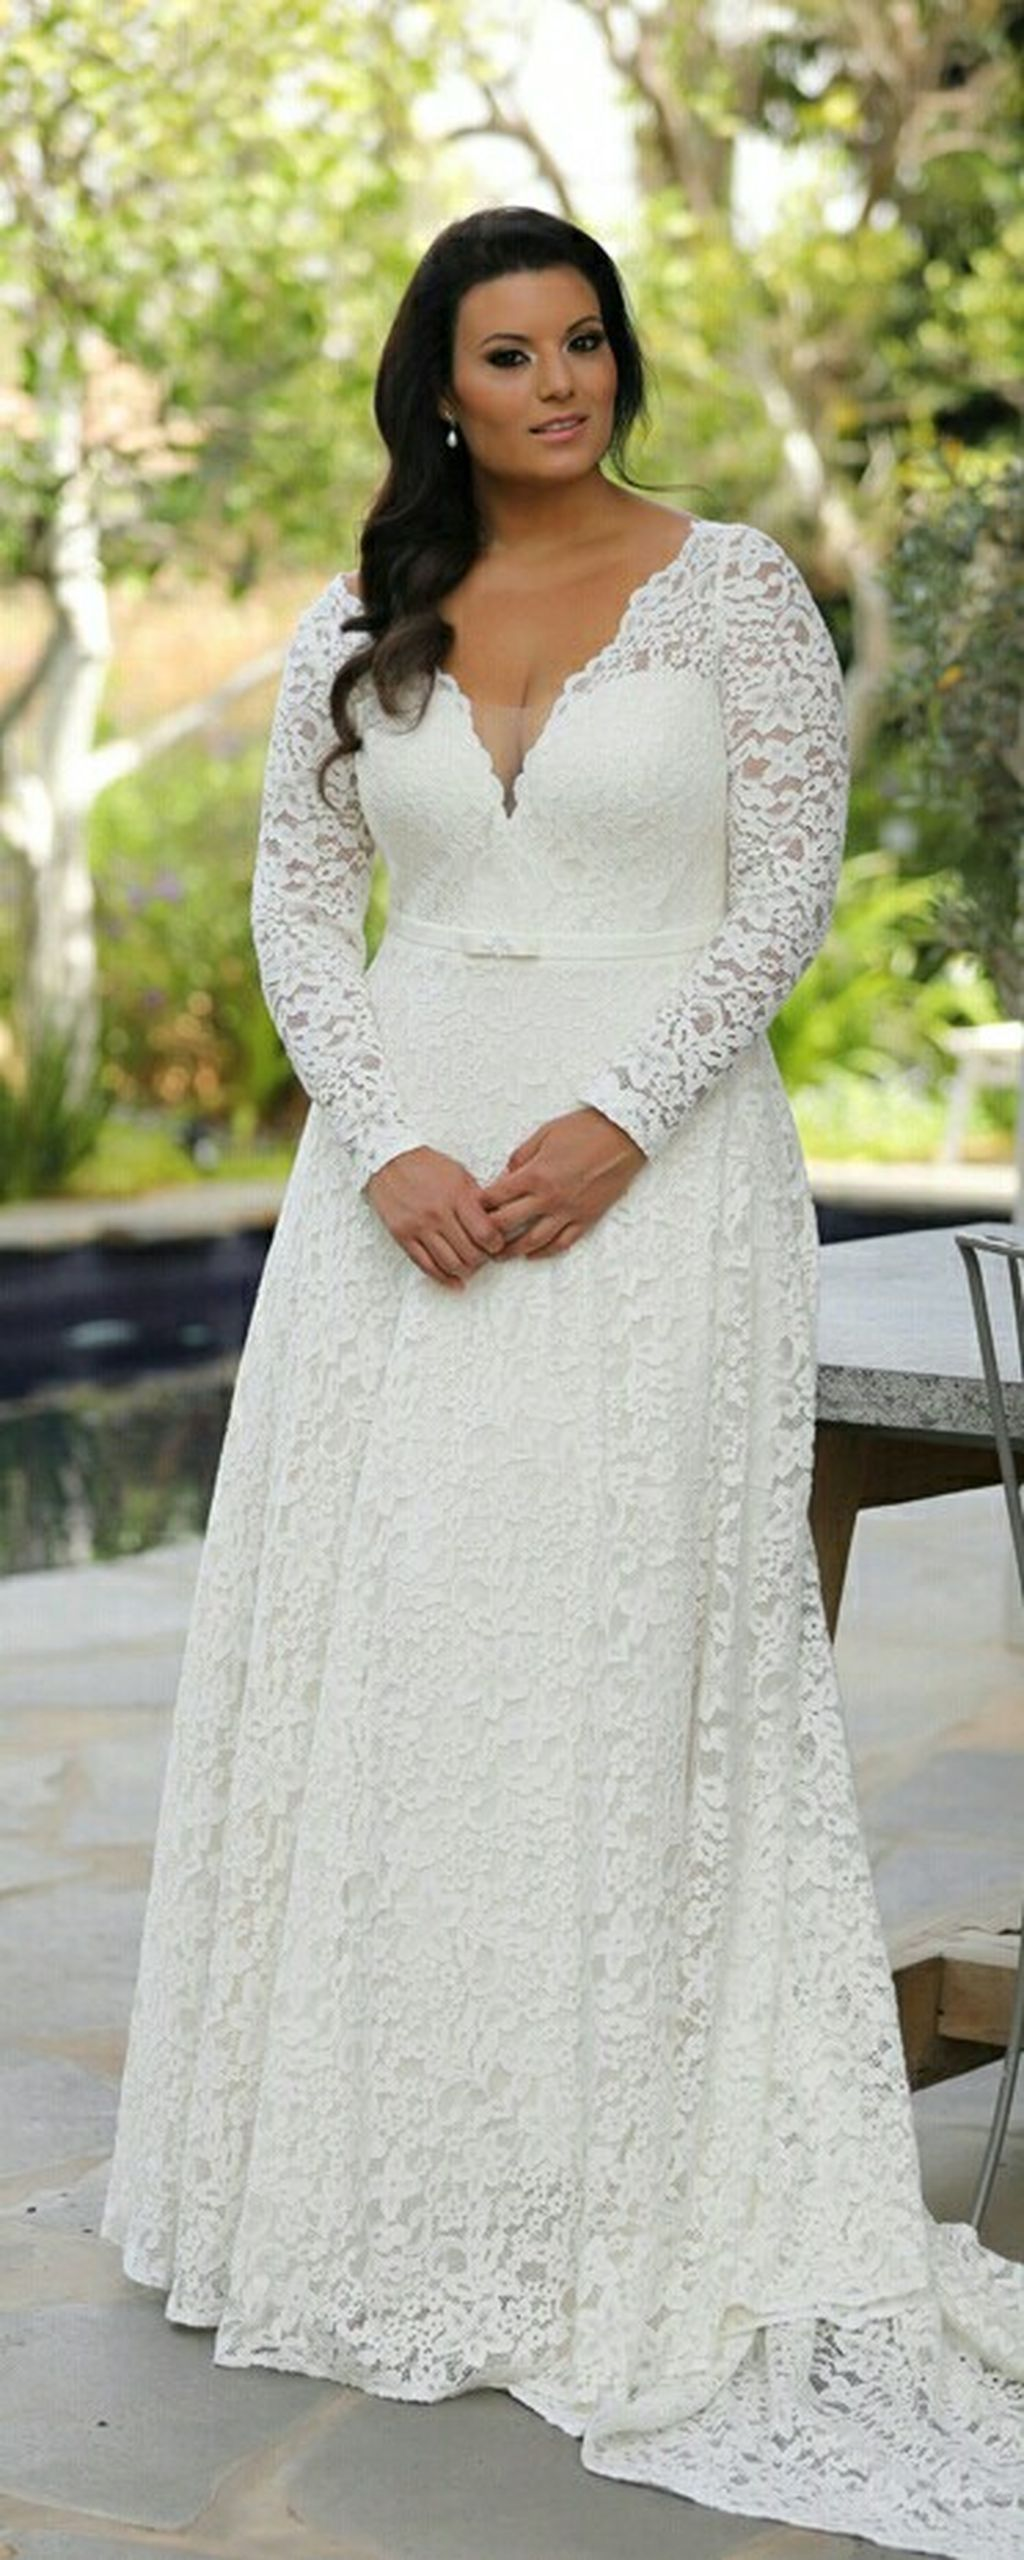 Winter wedding dresses plus size   Stunning Plus Size Winter Wedding Dress Ideas with Lace  Dress